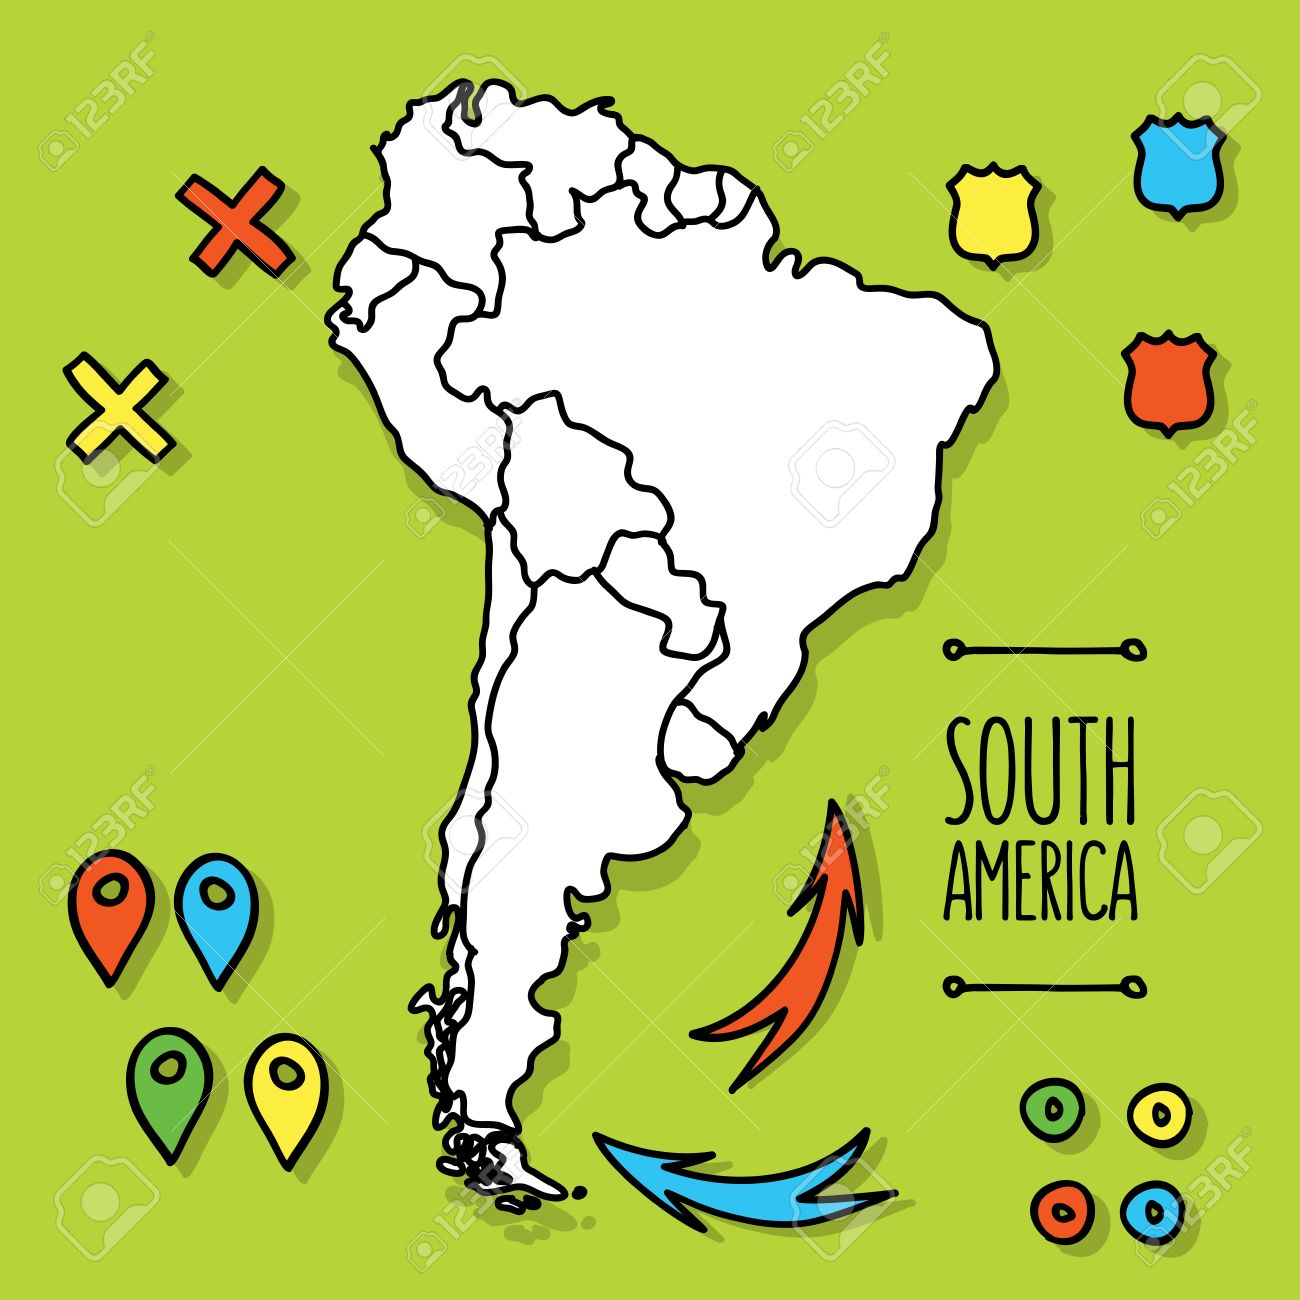 Cartoon Style Hand Drawn Travel Map Of South America With Pins – South America Travel Map